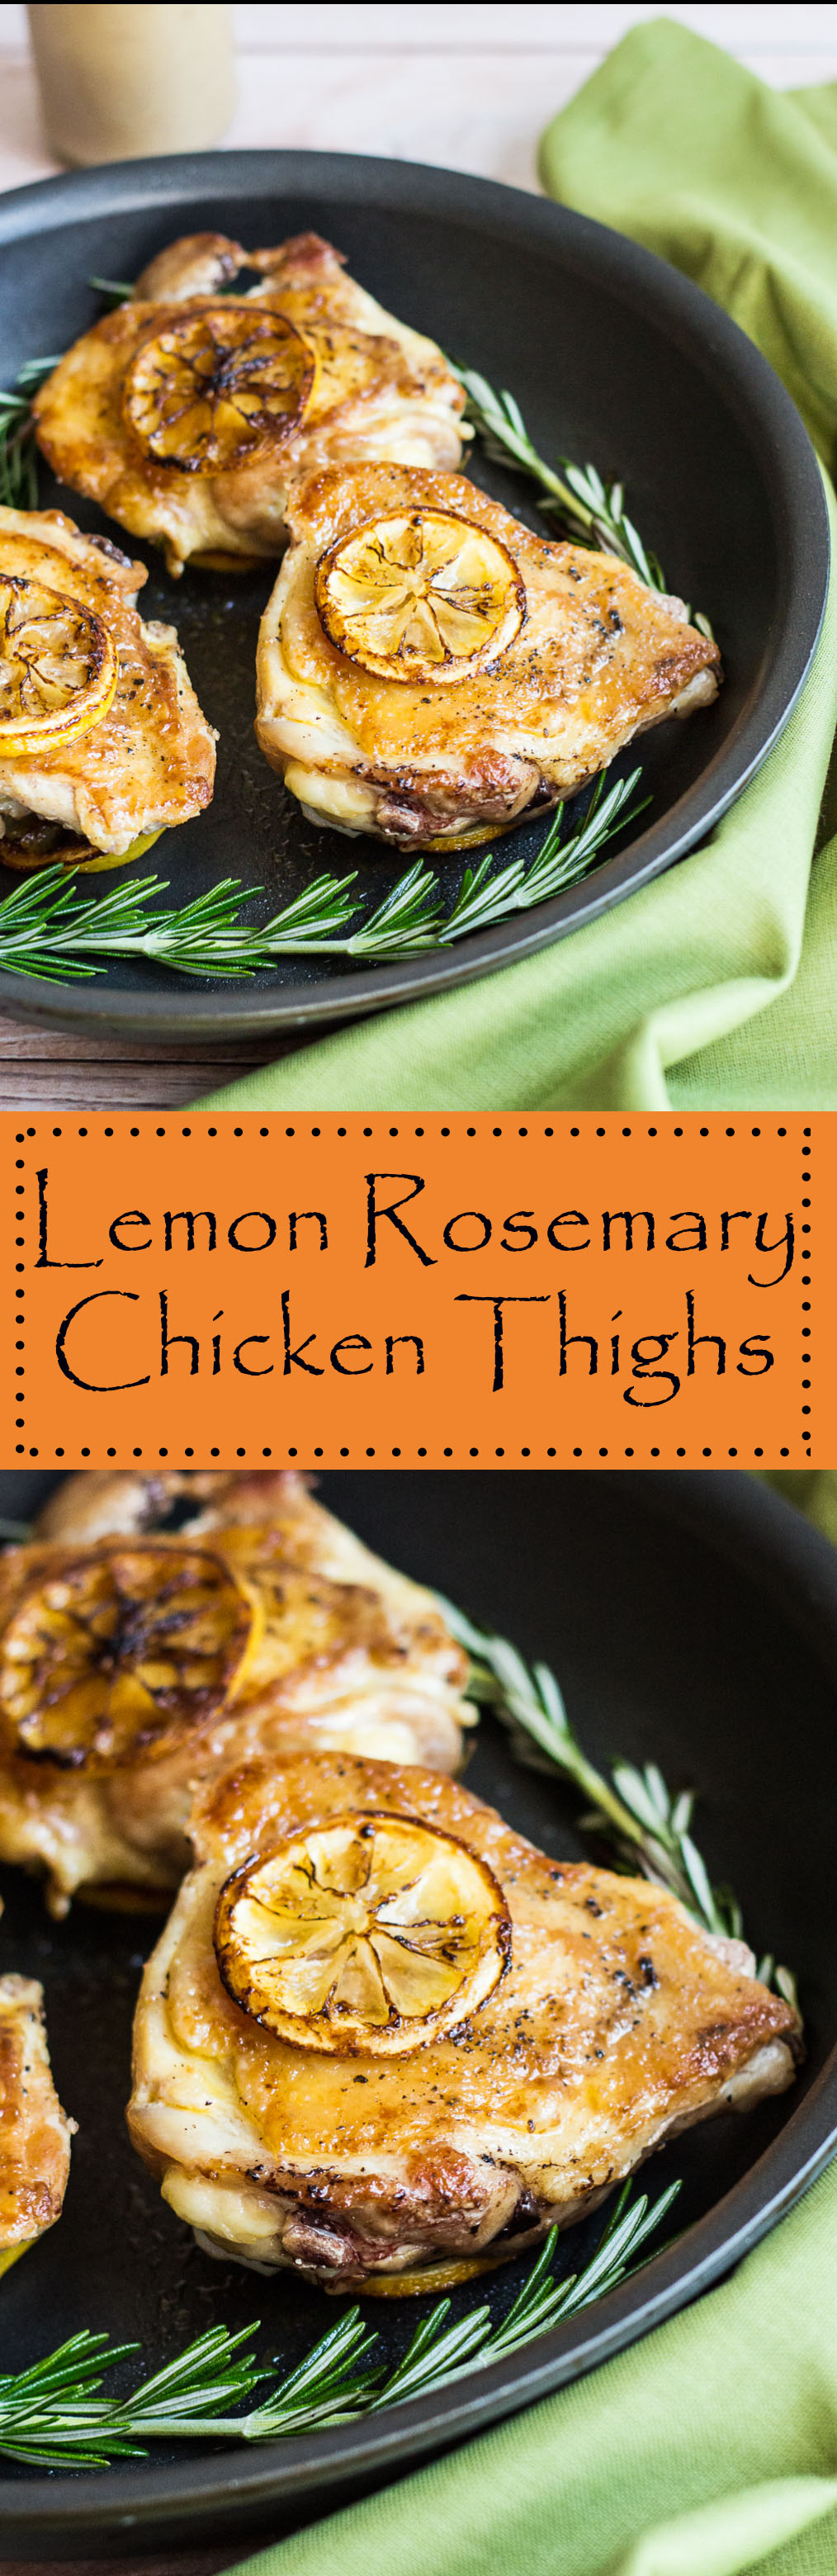 Lemon Rosemary Chicken Thighs with Pan Sauce – Cooking at Sabrina's